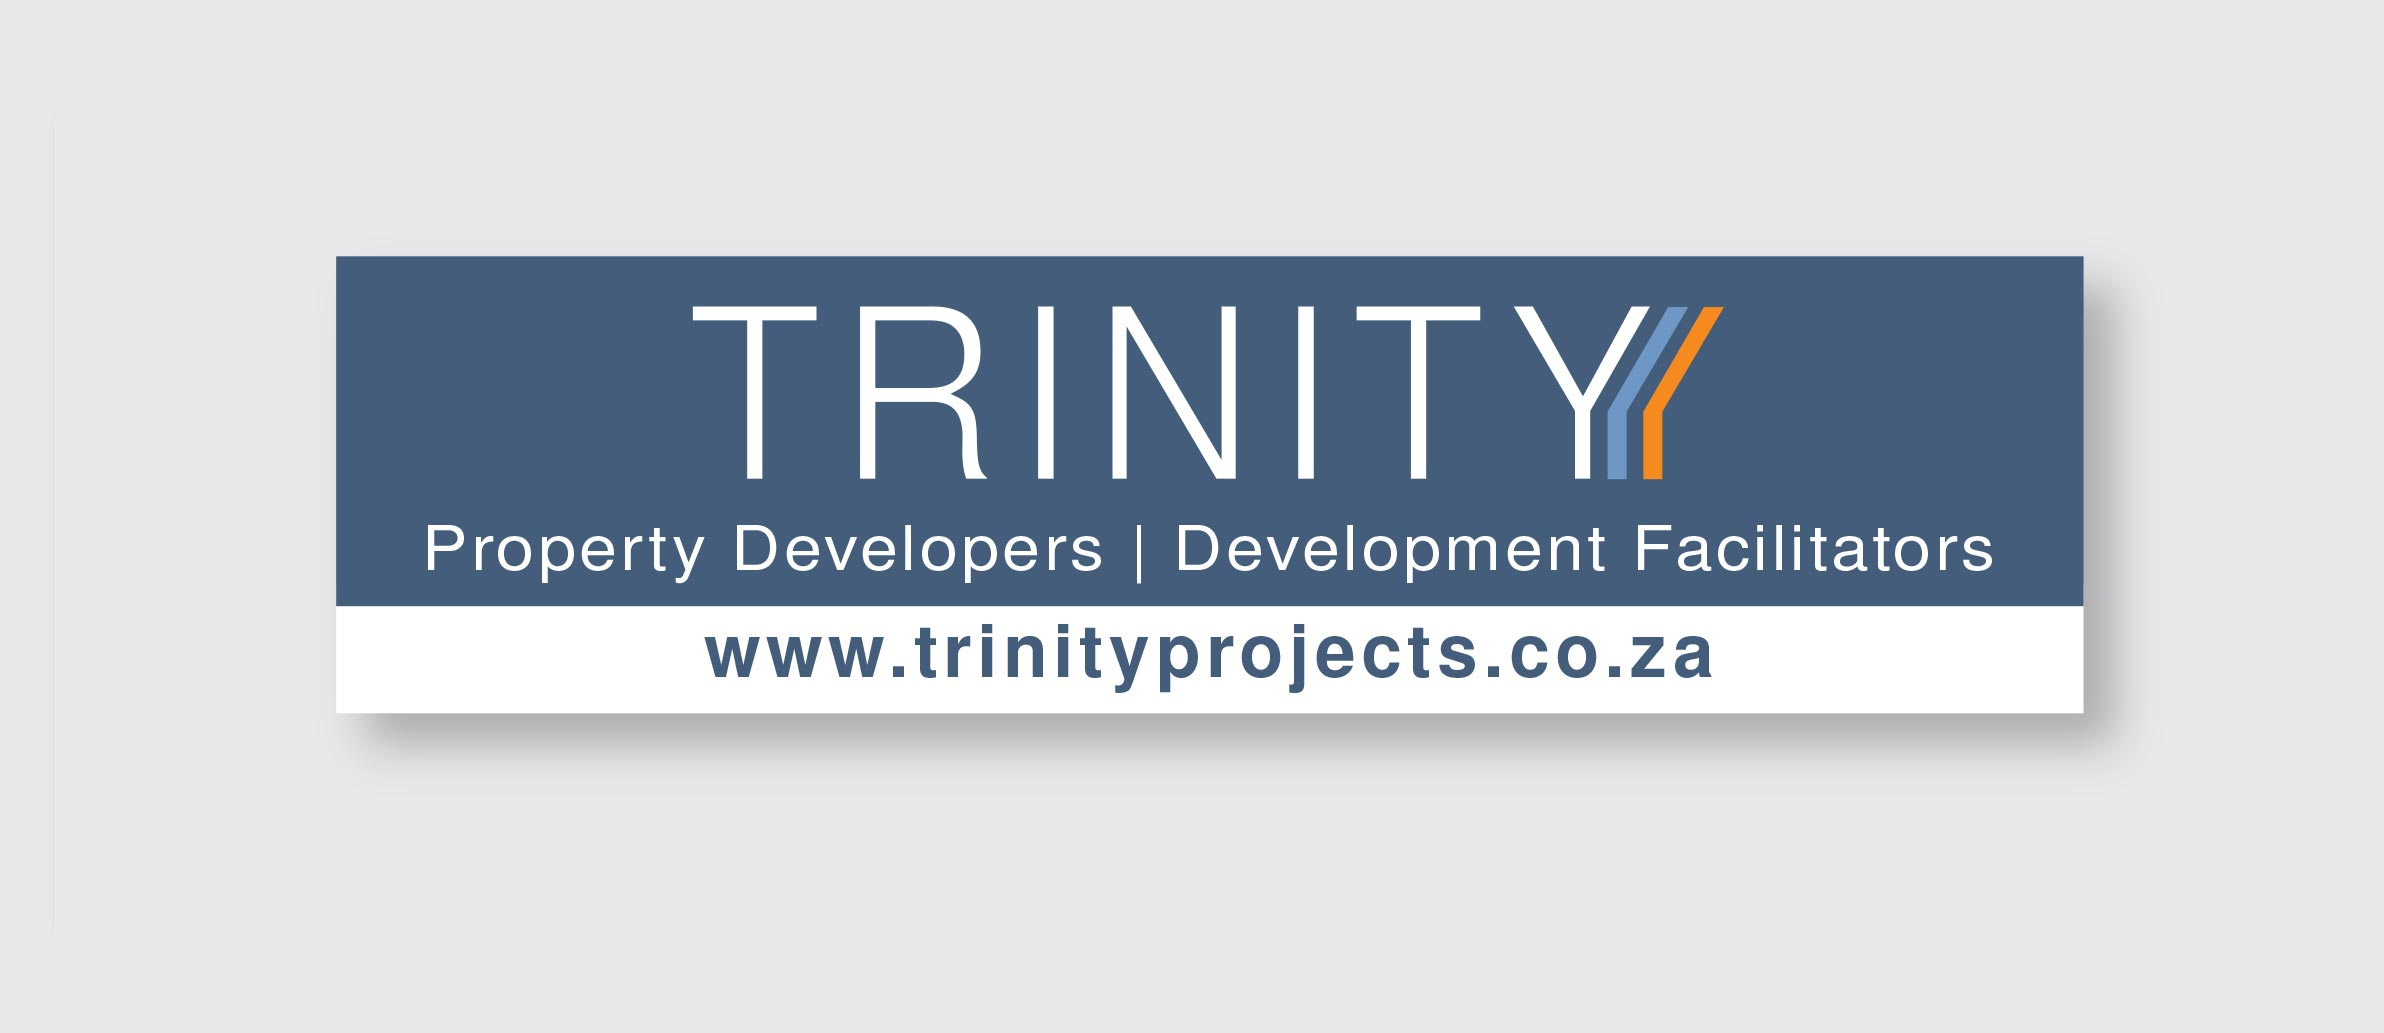 TRINITY school banner - TRINITY PROJECTS